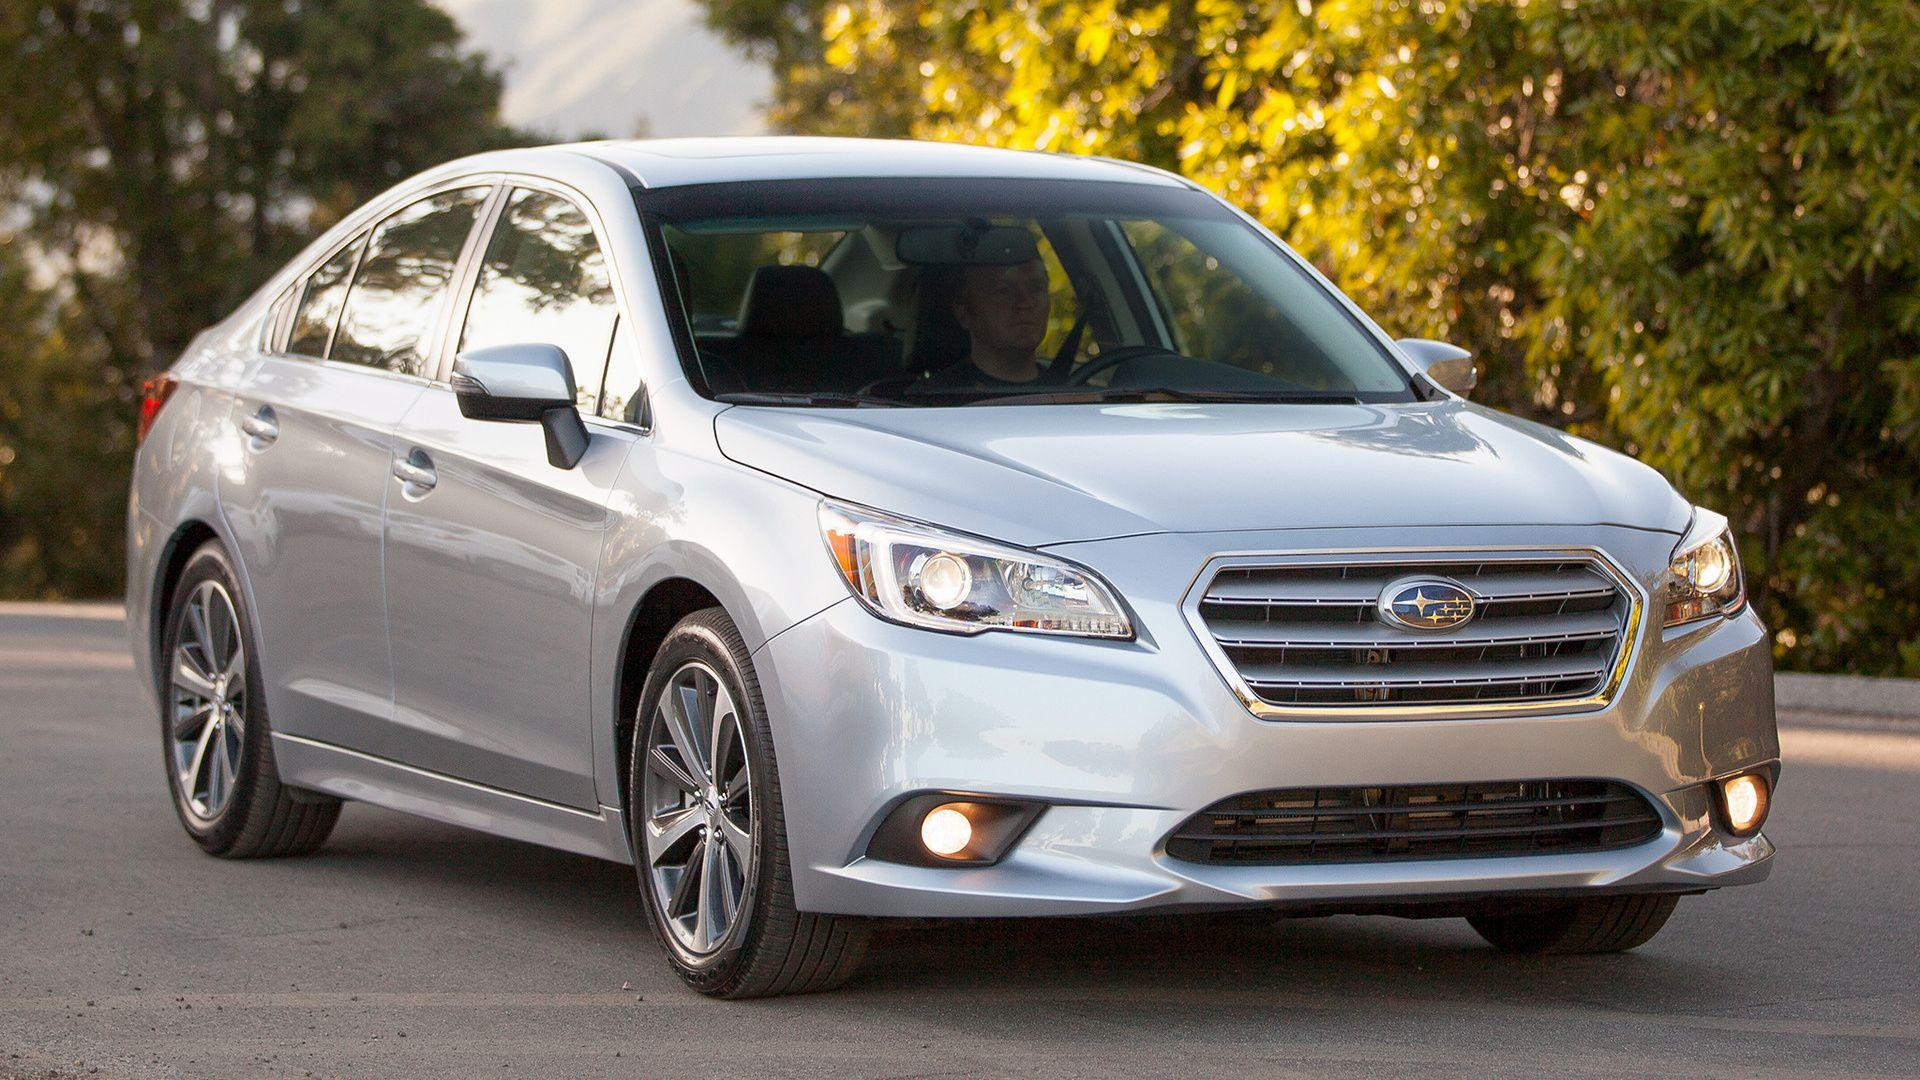 Subaru Legacy 3.6R (2015) Wallpapers and HD Images - Car Pixel